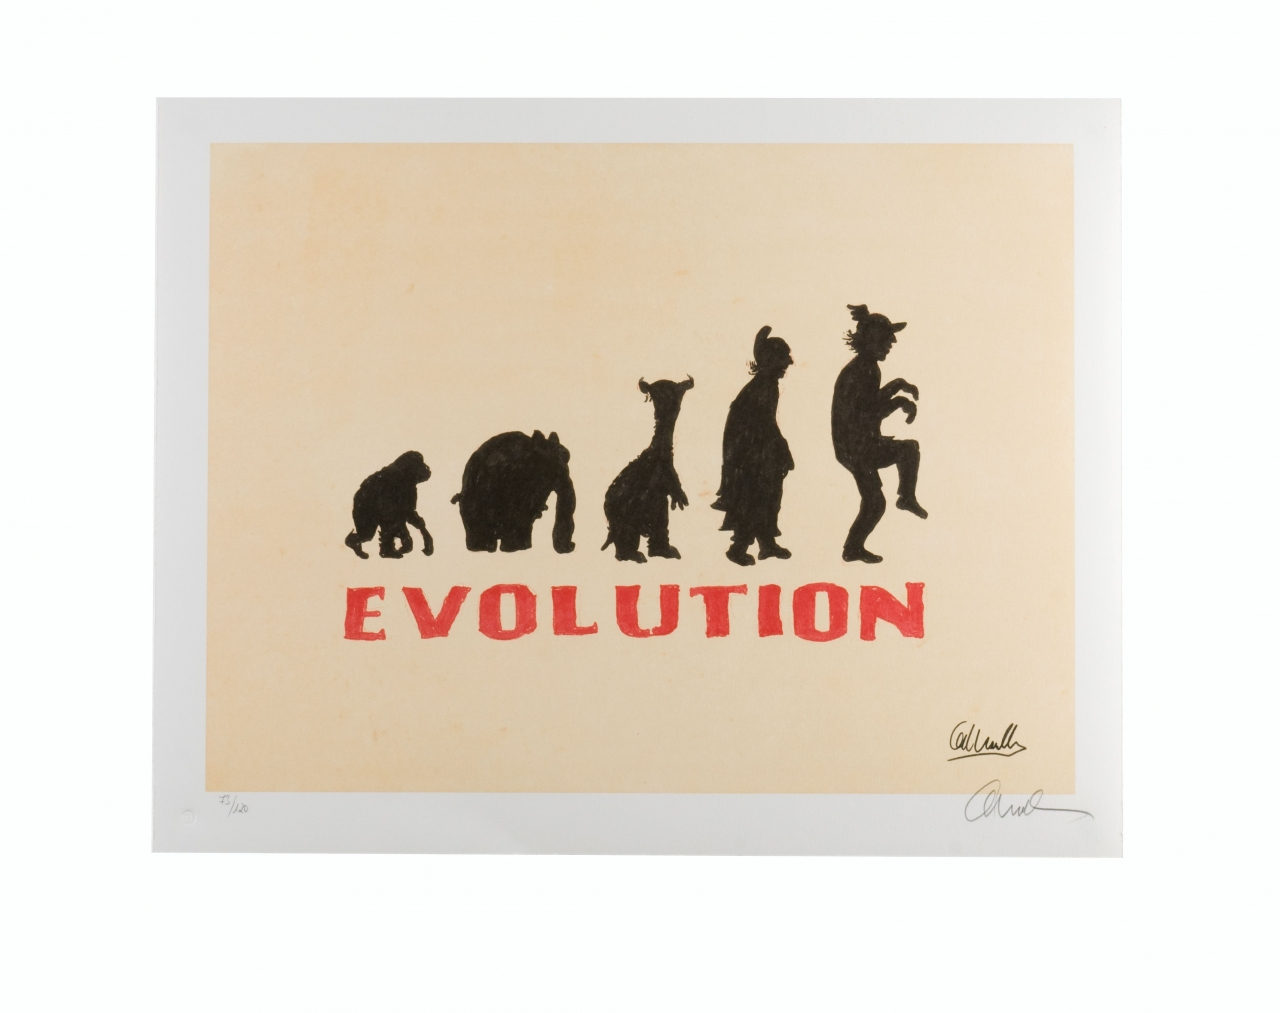 Evolution (groß)